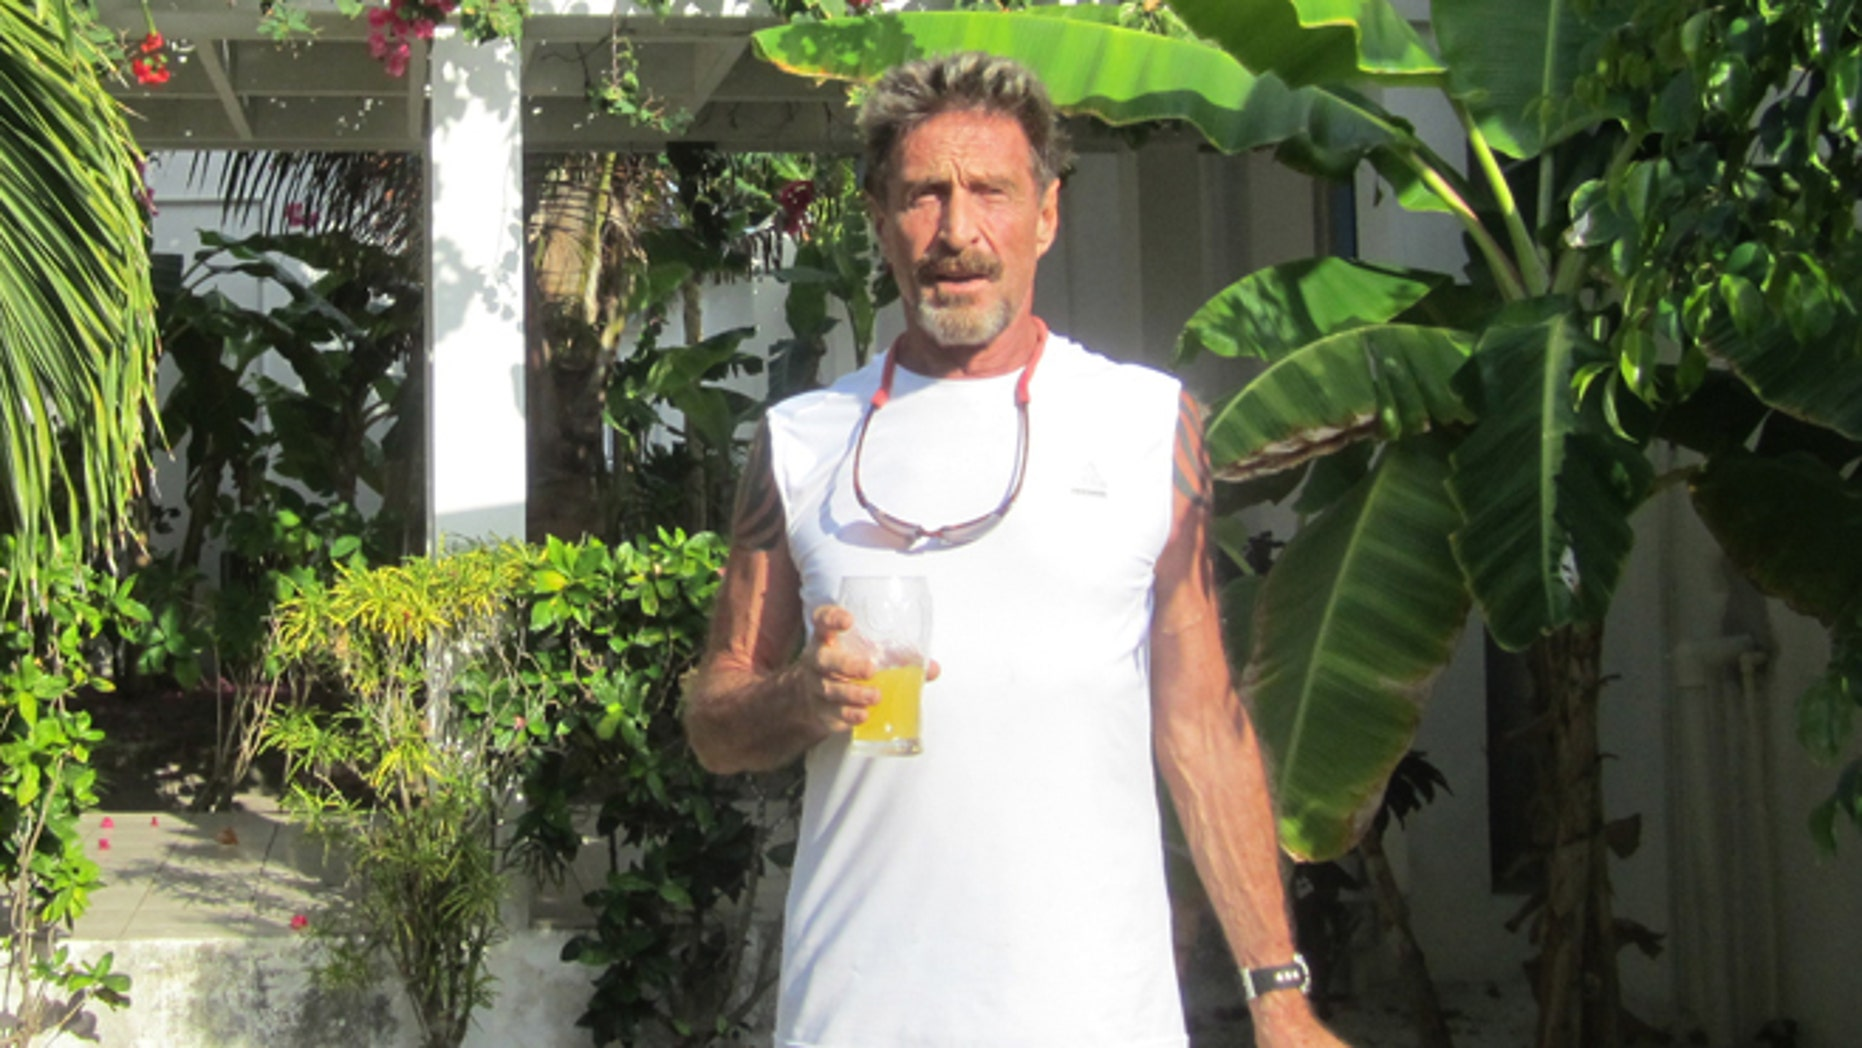 John McAfee, the founder of the antivirus company that still bears his name, seen in his hacienda in Belize.